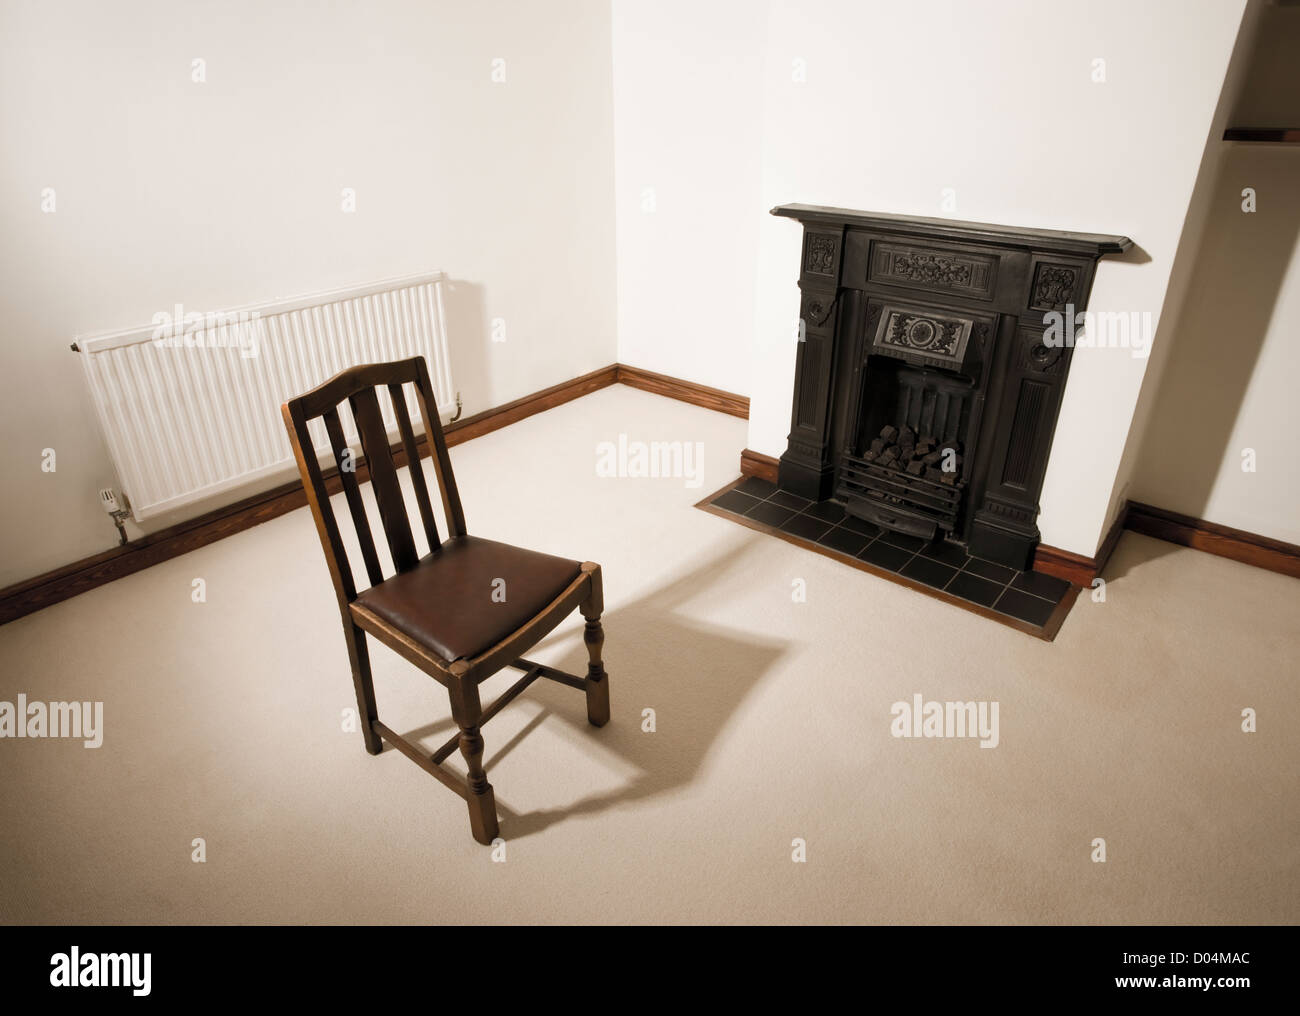 Single chair in empty room. - Stock Image